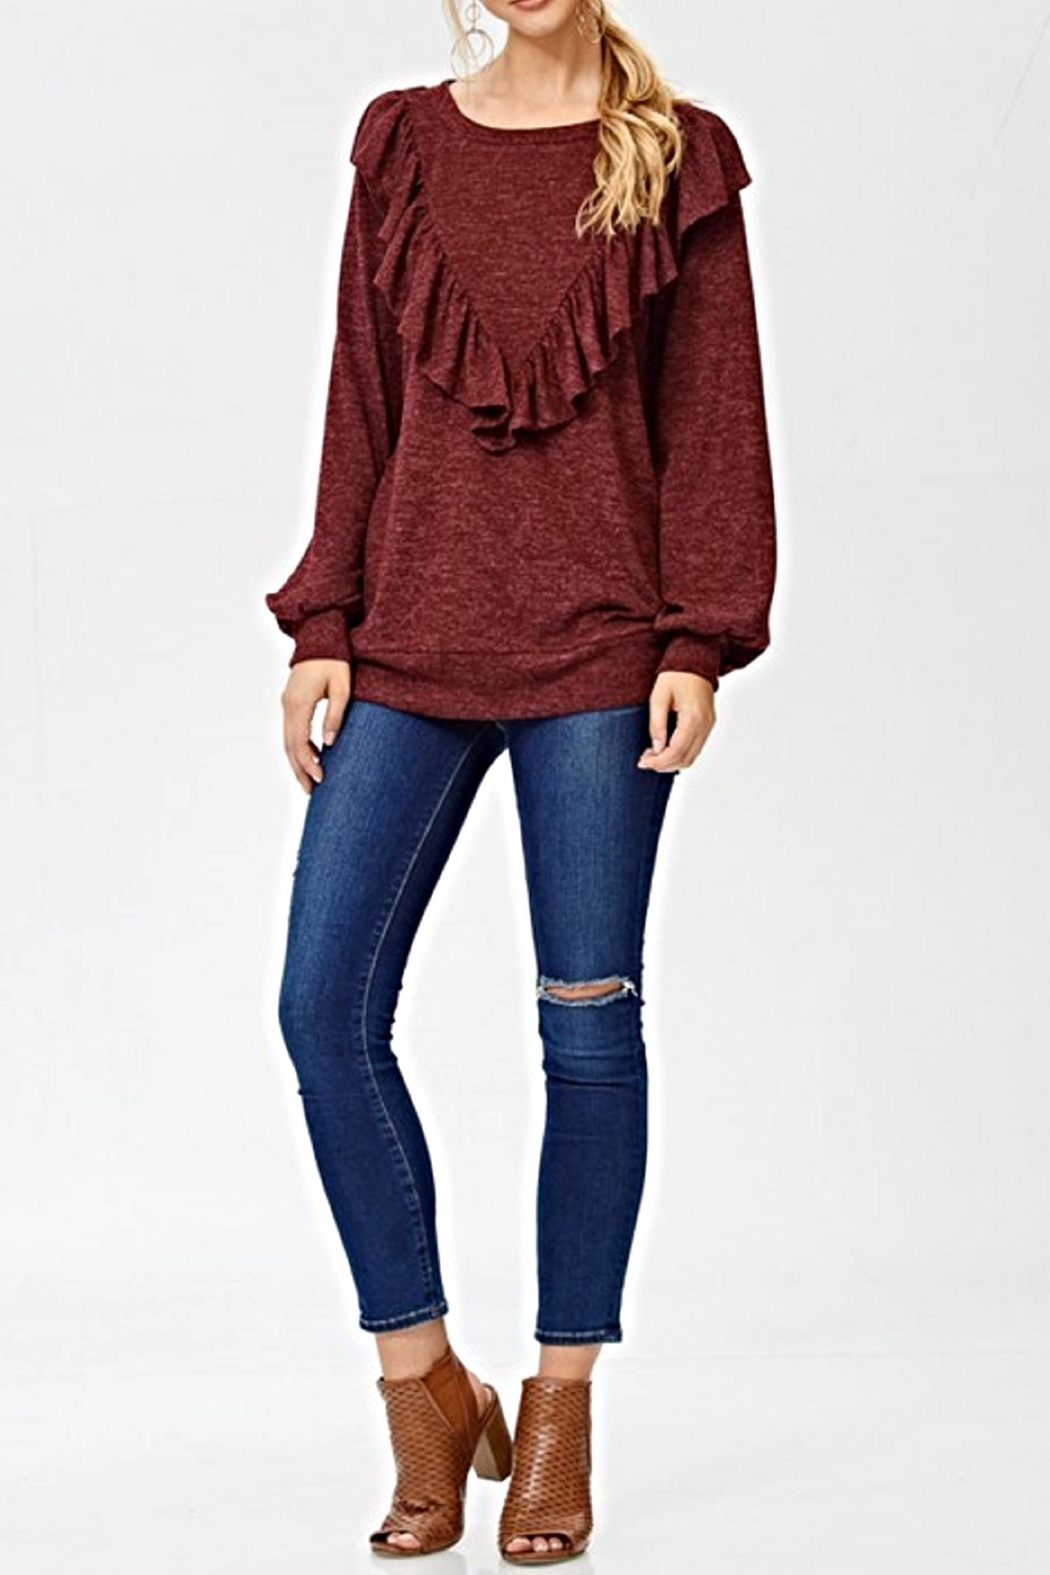 White Birch The Kaia Sweater - Back Cropped Image